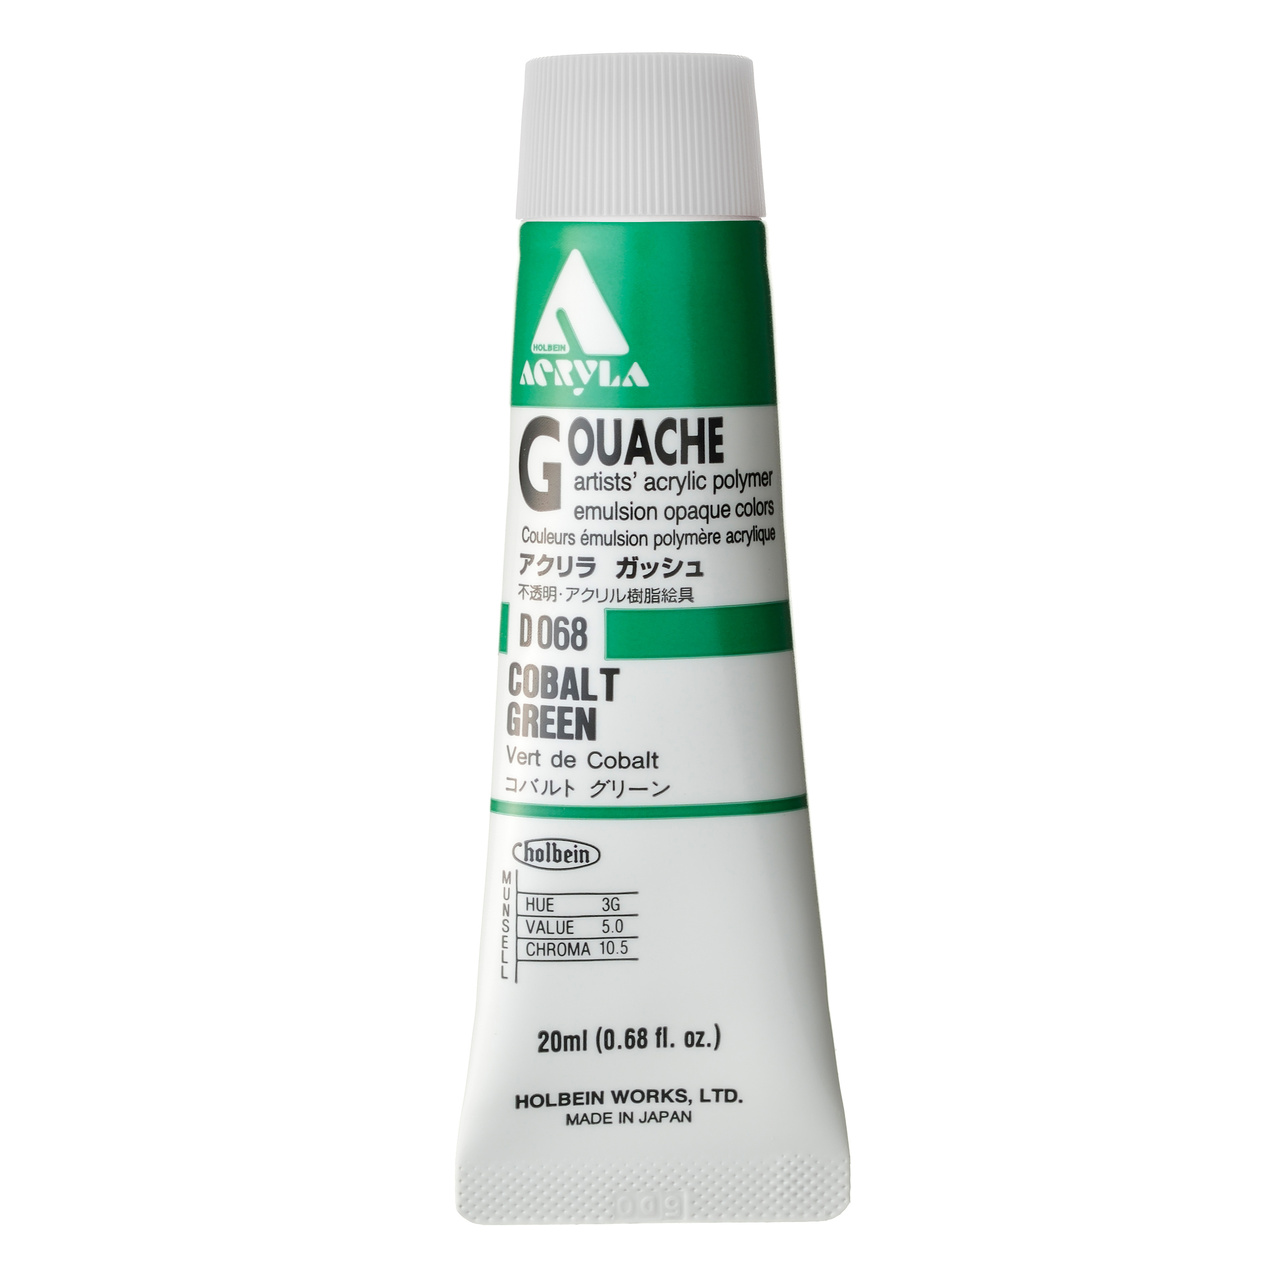 ACRYLA GOUACHE 20ML COBALT GREEN